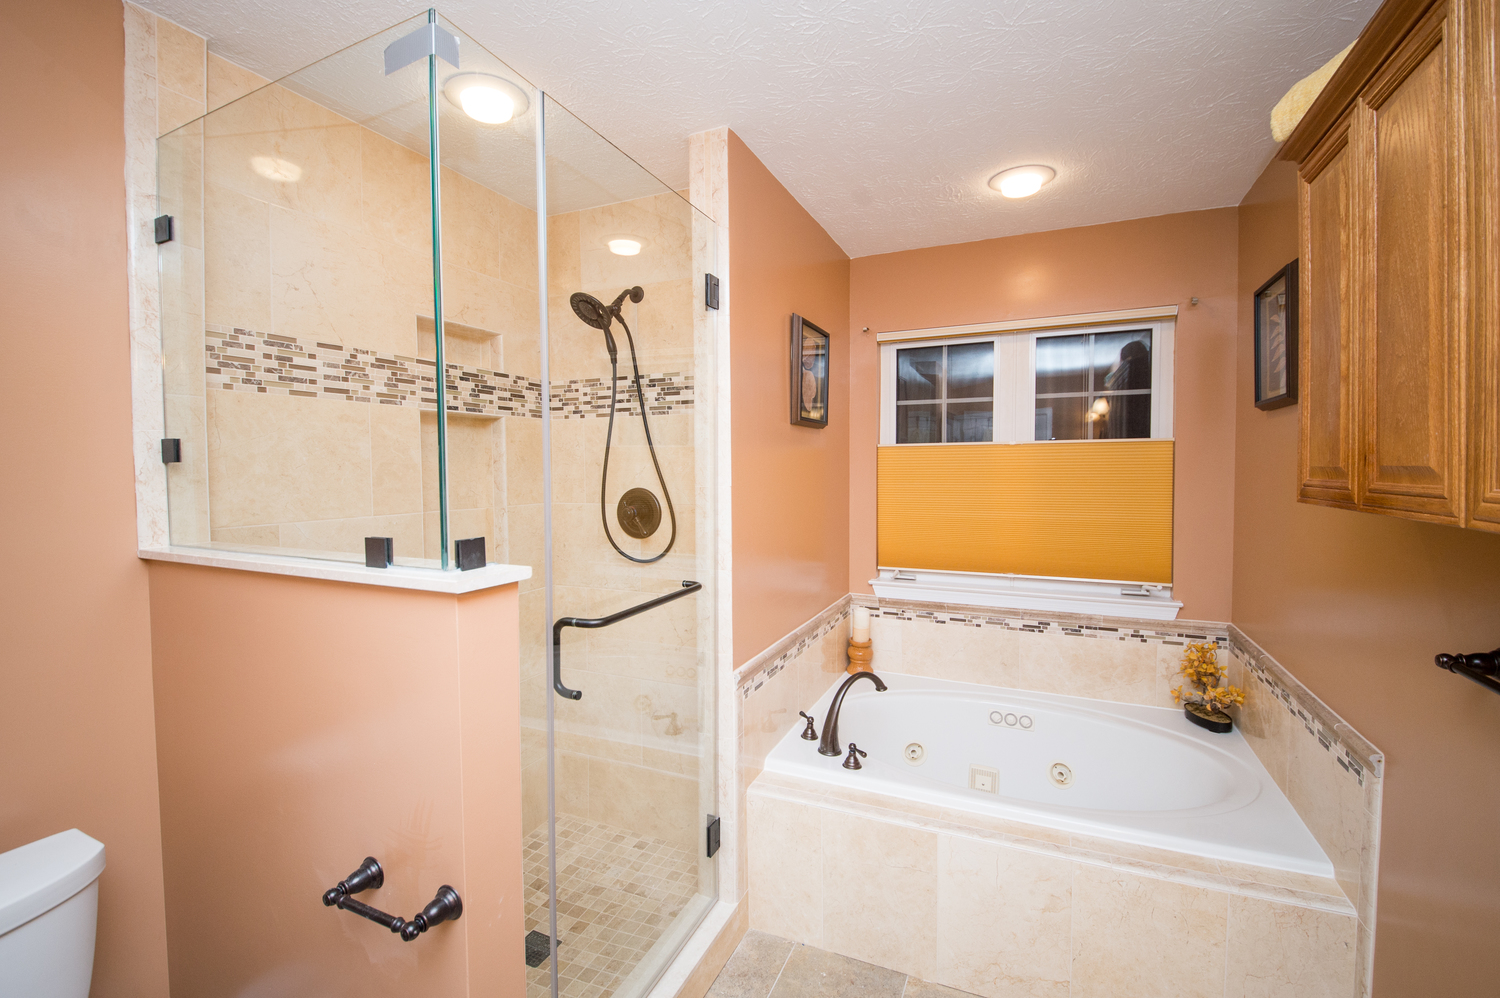 Bathroom+Remodel+Wheaton+MD.jpg